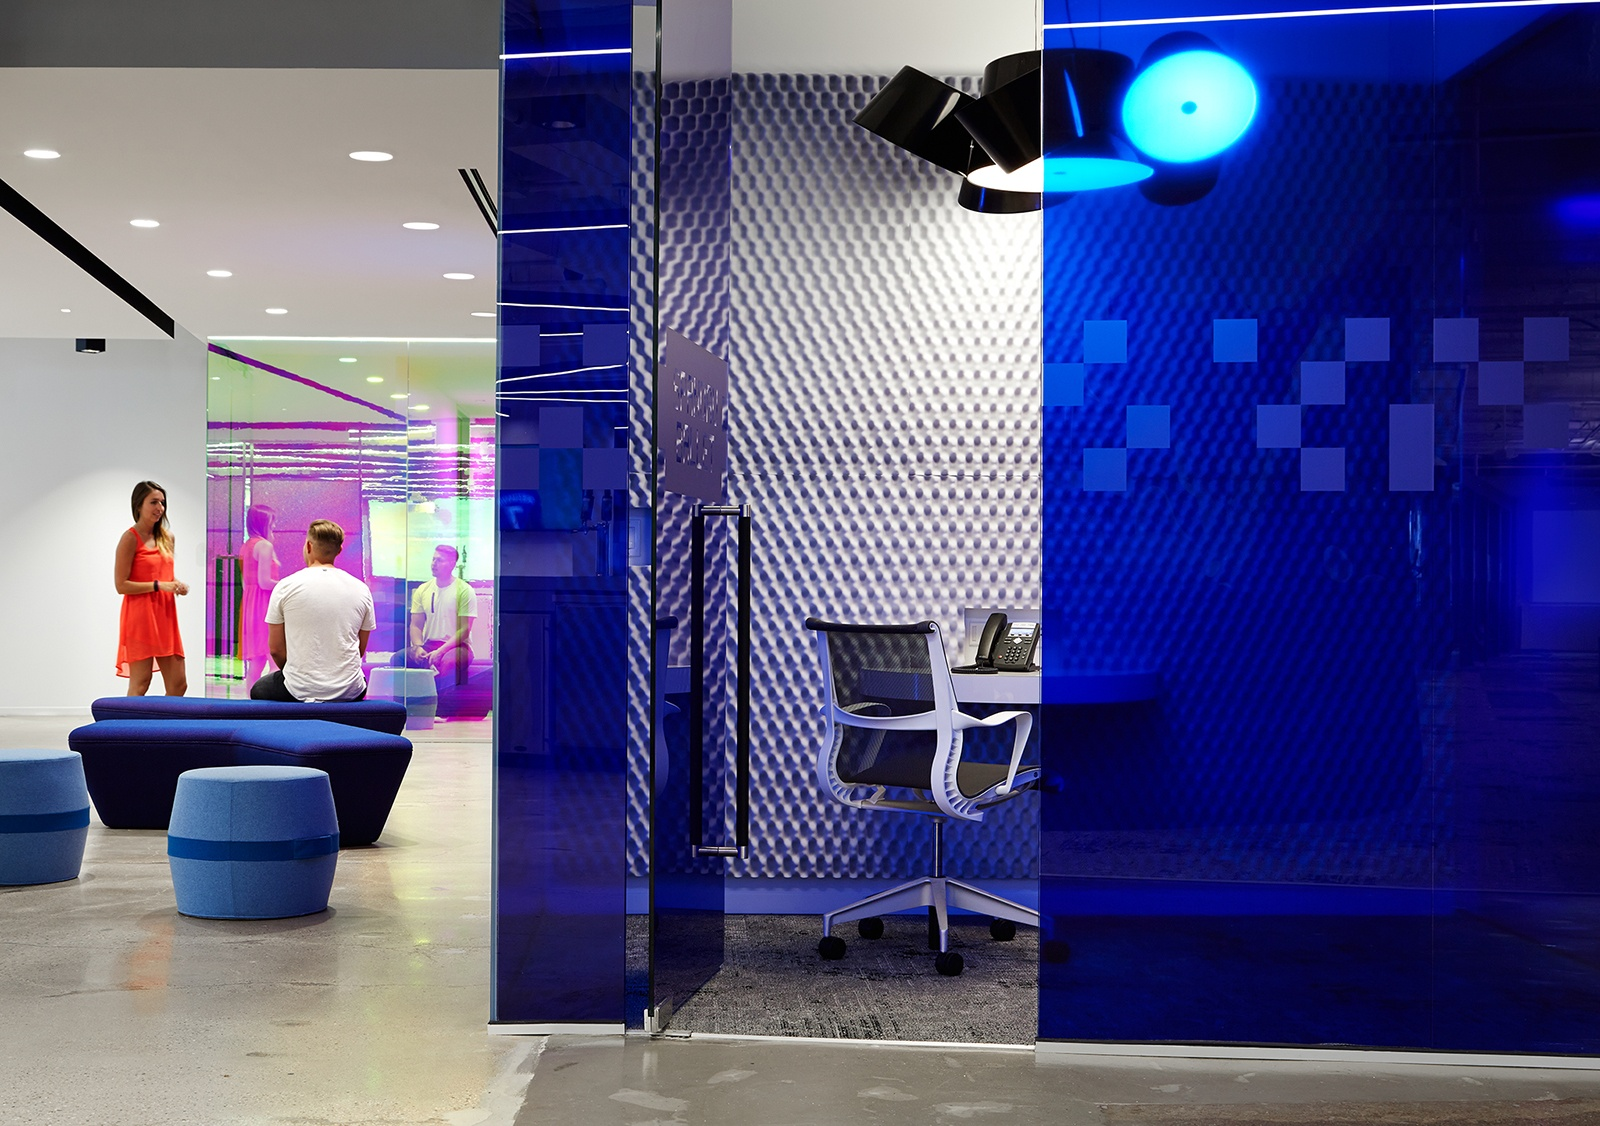 pandora-new-office-chicago-7